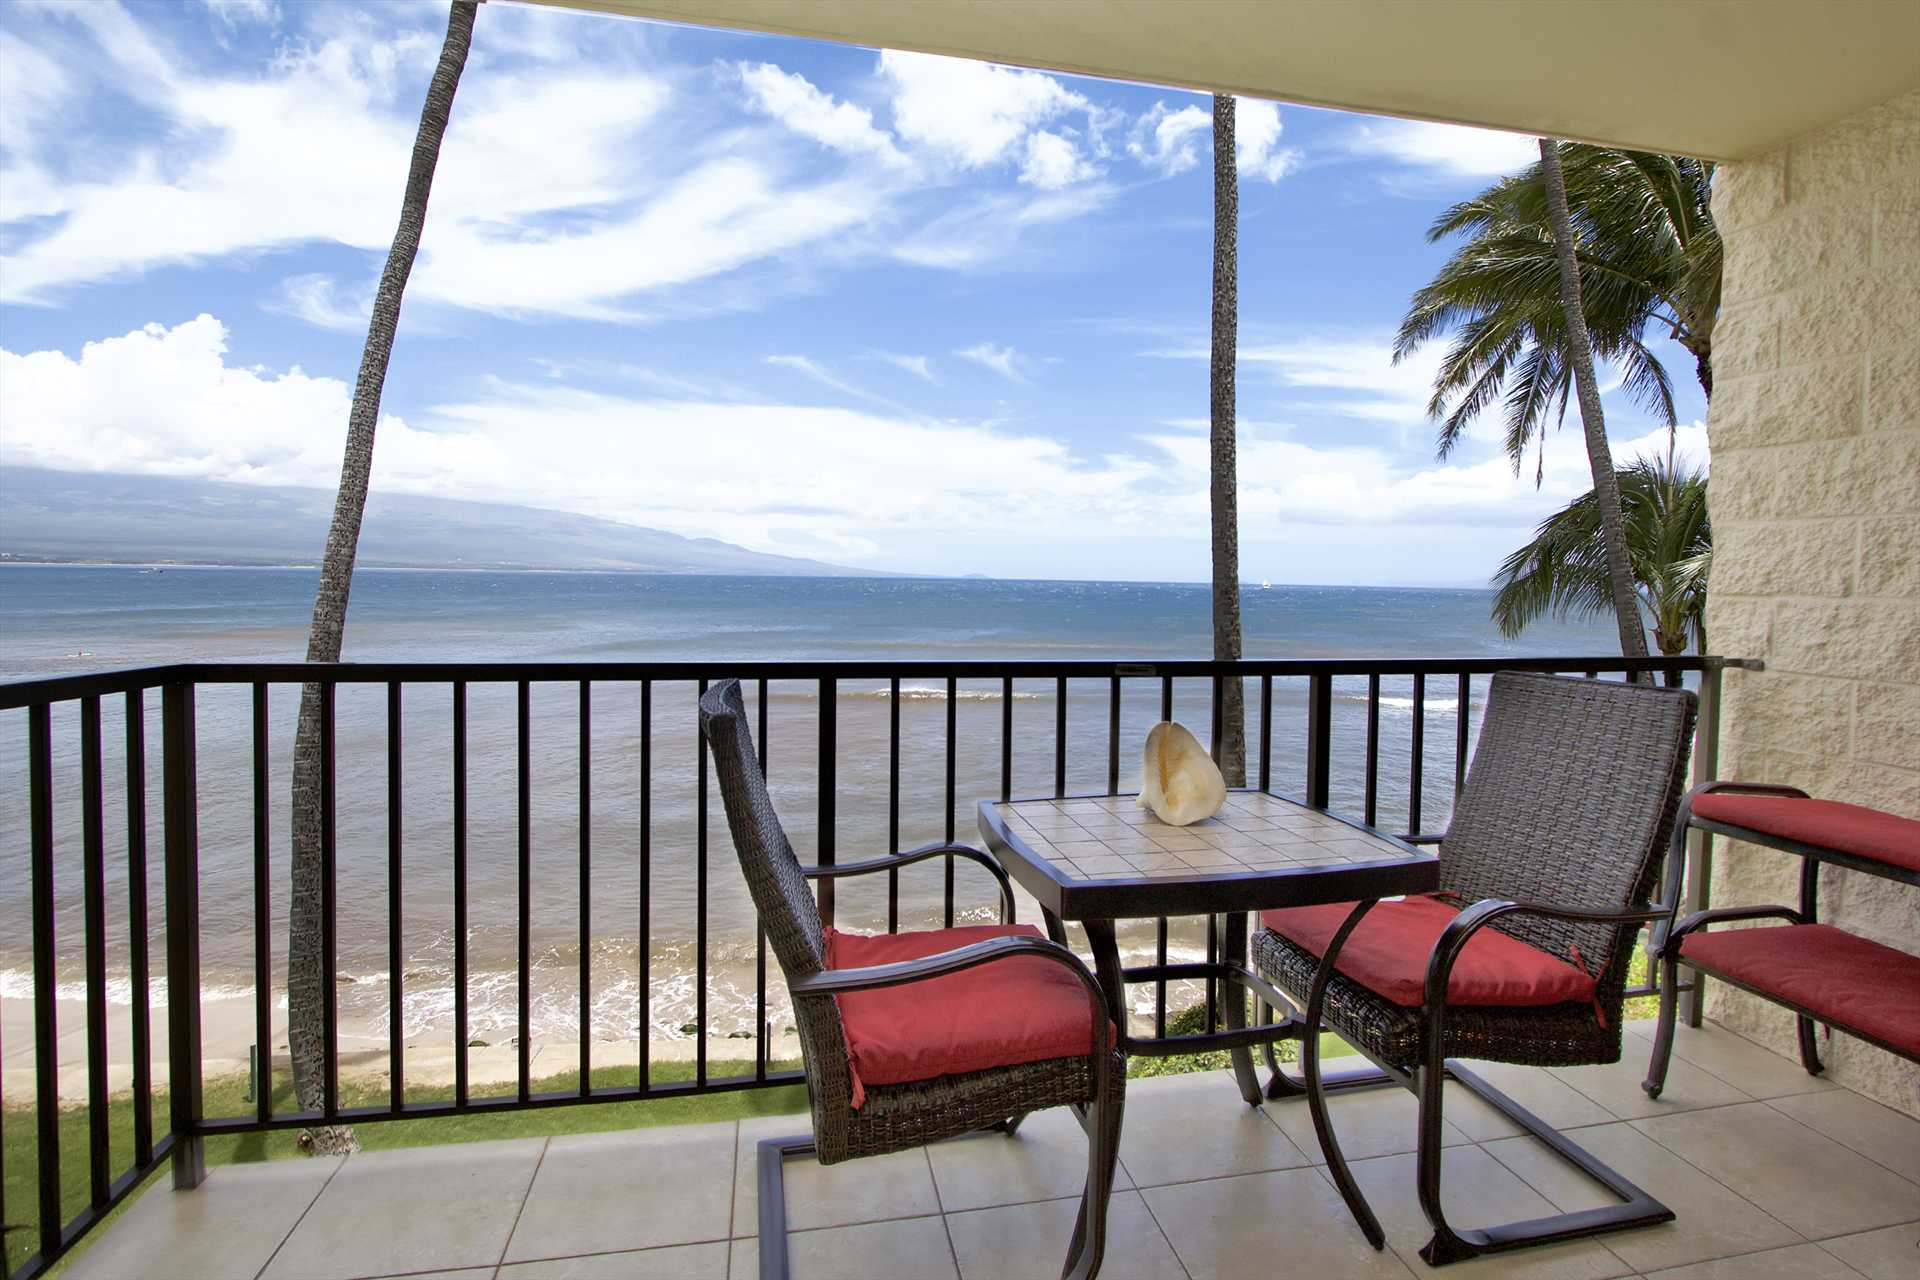 Enjoy the view from your direct oceanfront lanai